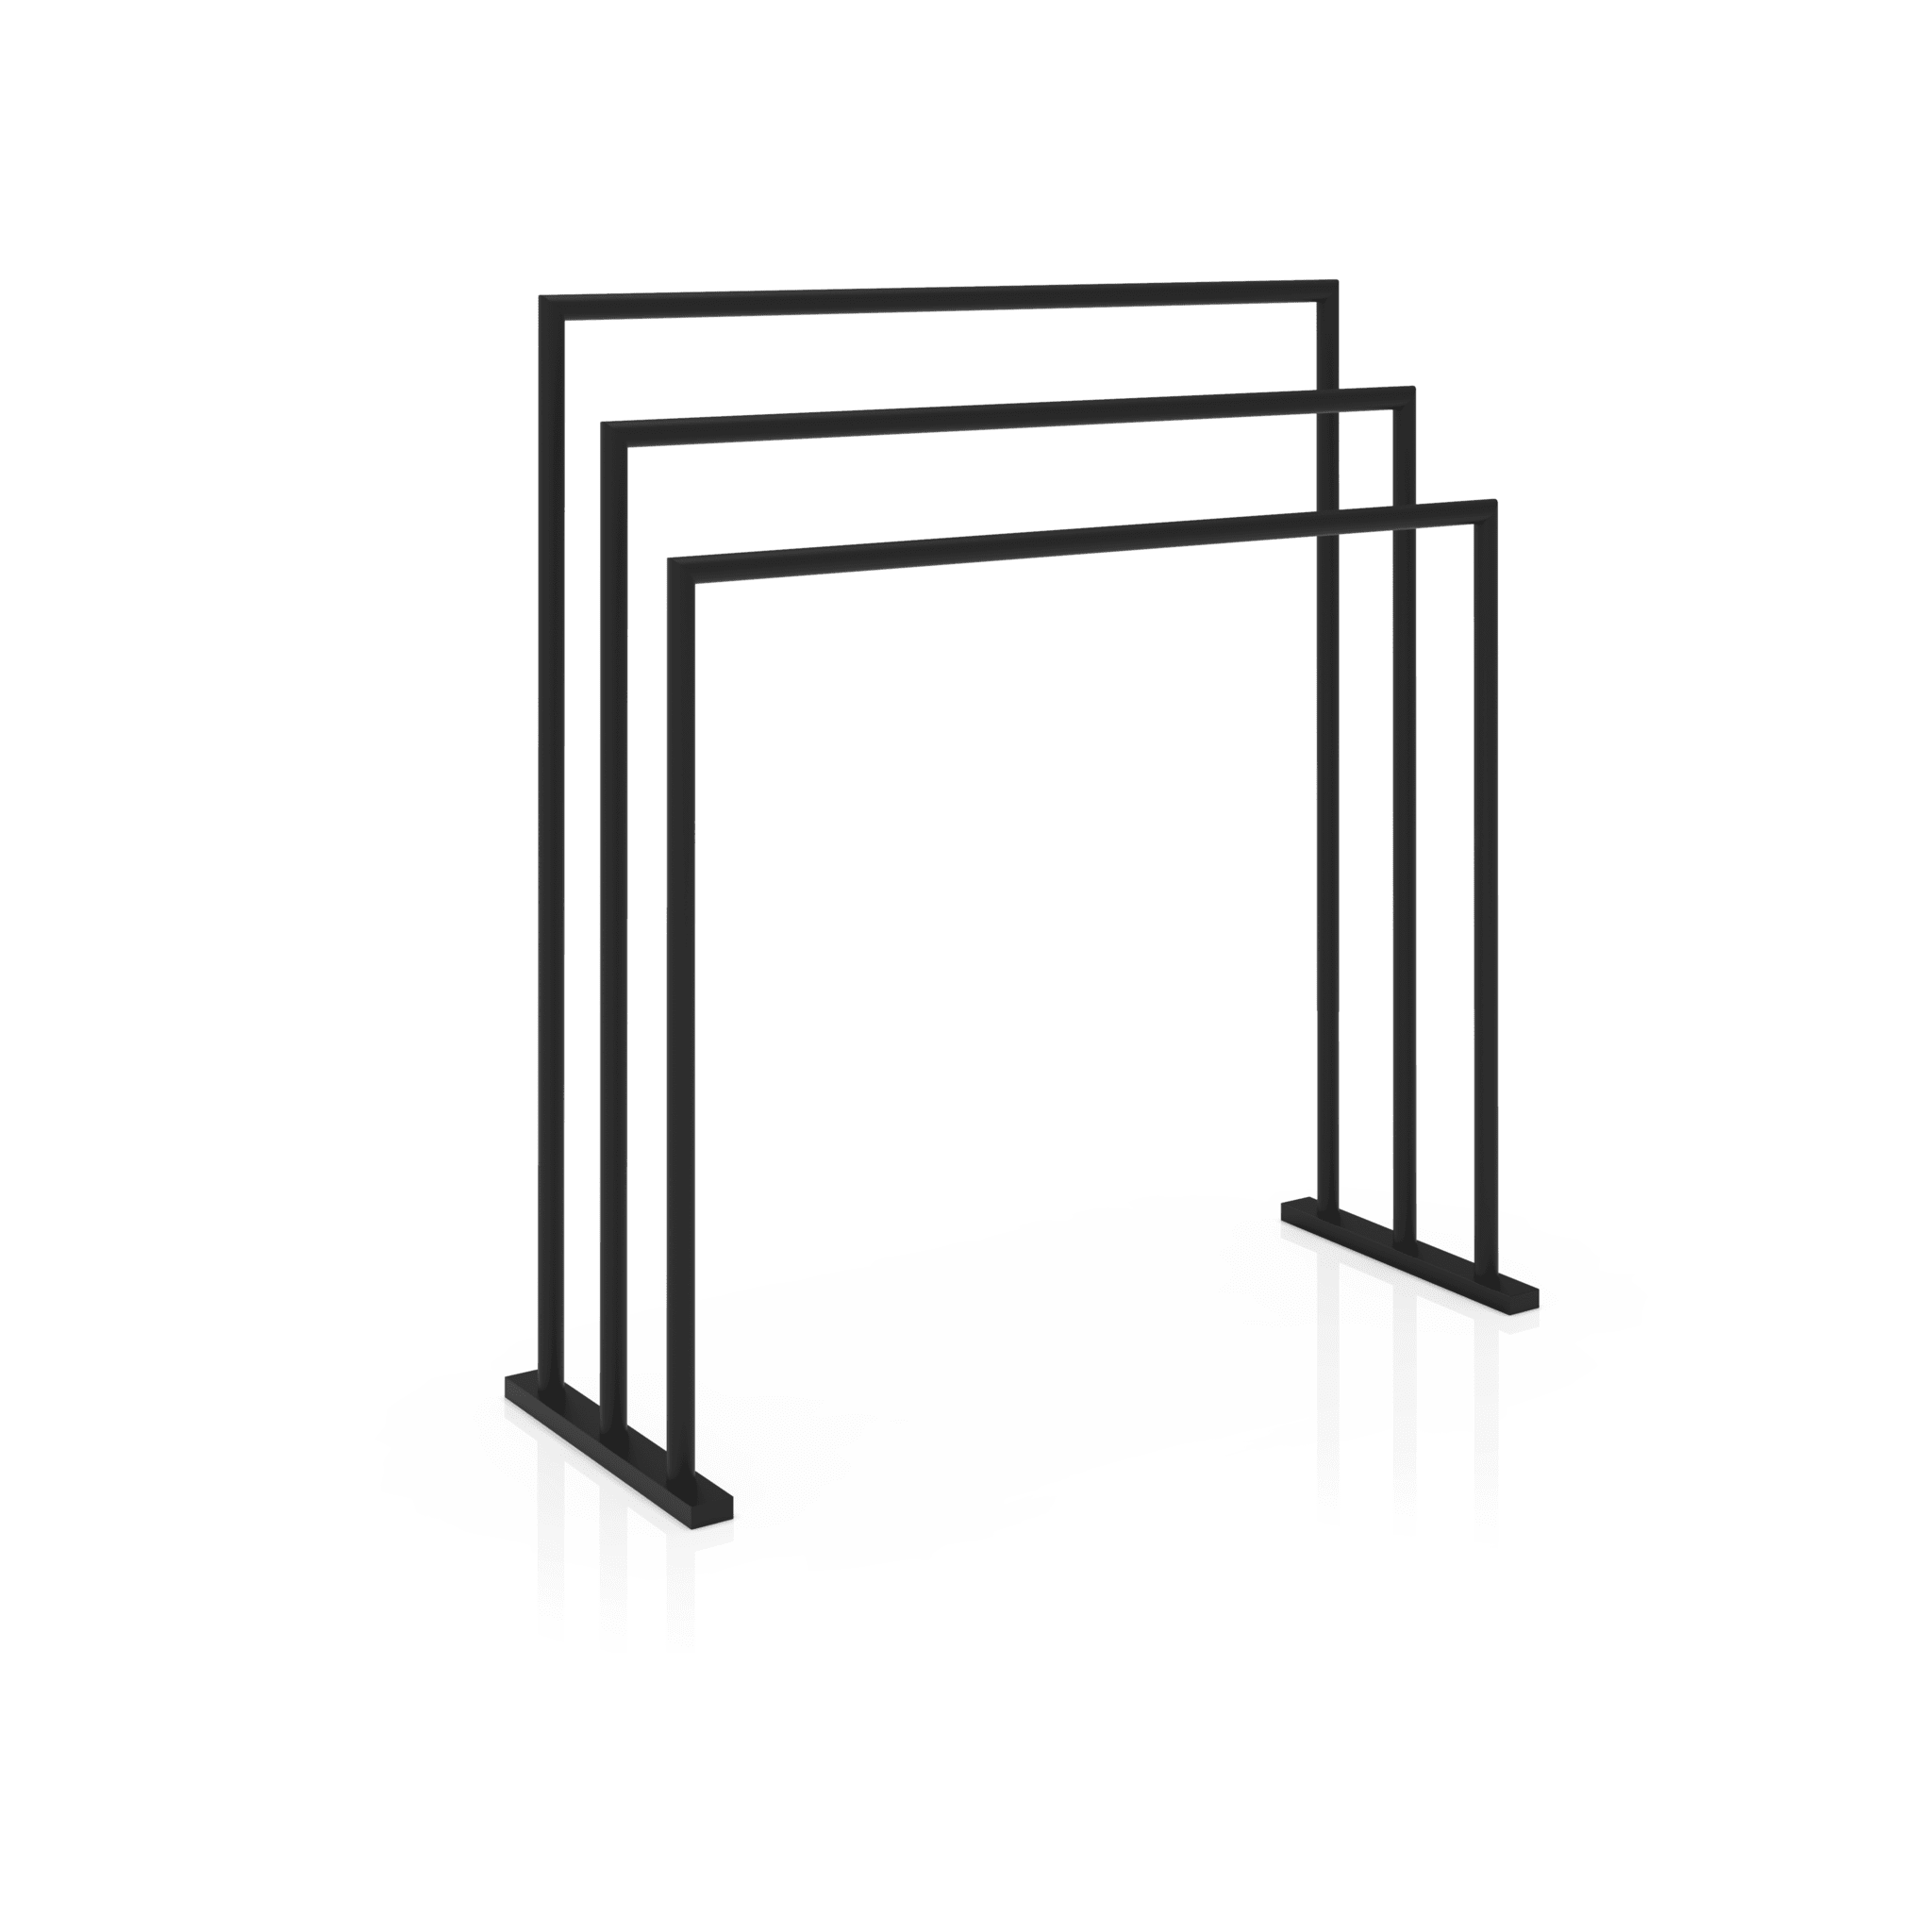 DWBA Freestanding Towel Bathroom Rack Stand 3 Tier Towel Holder, Matte Black